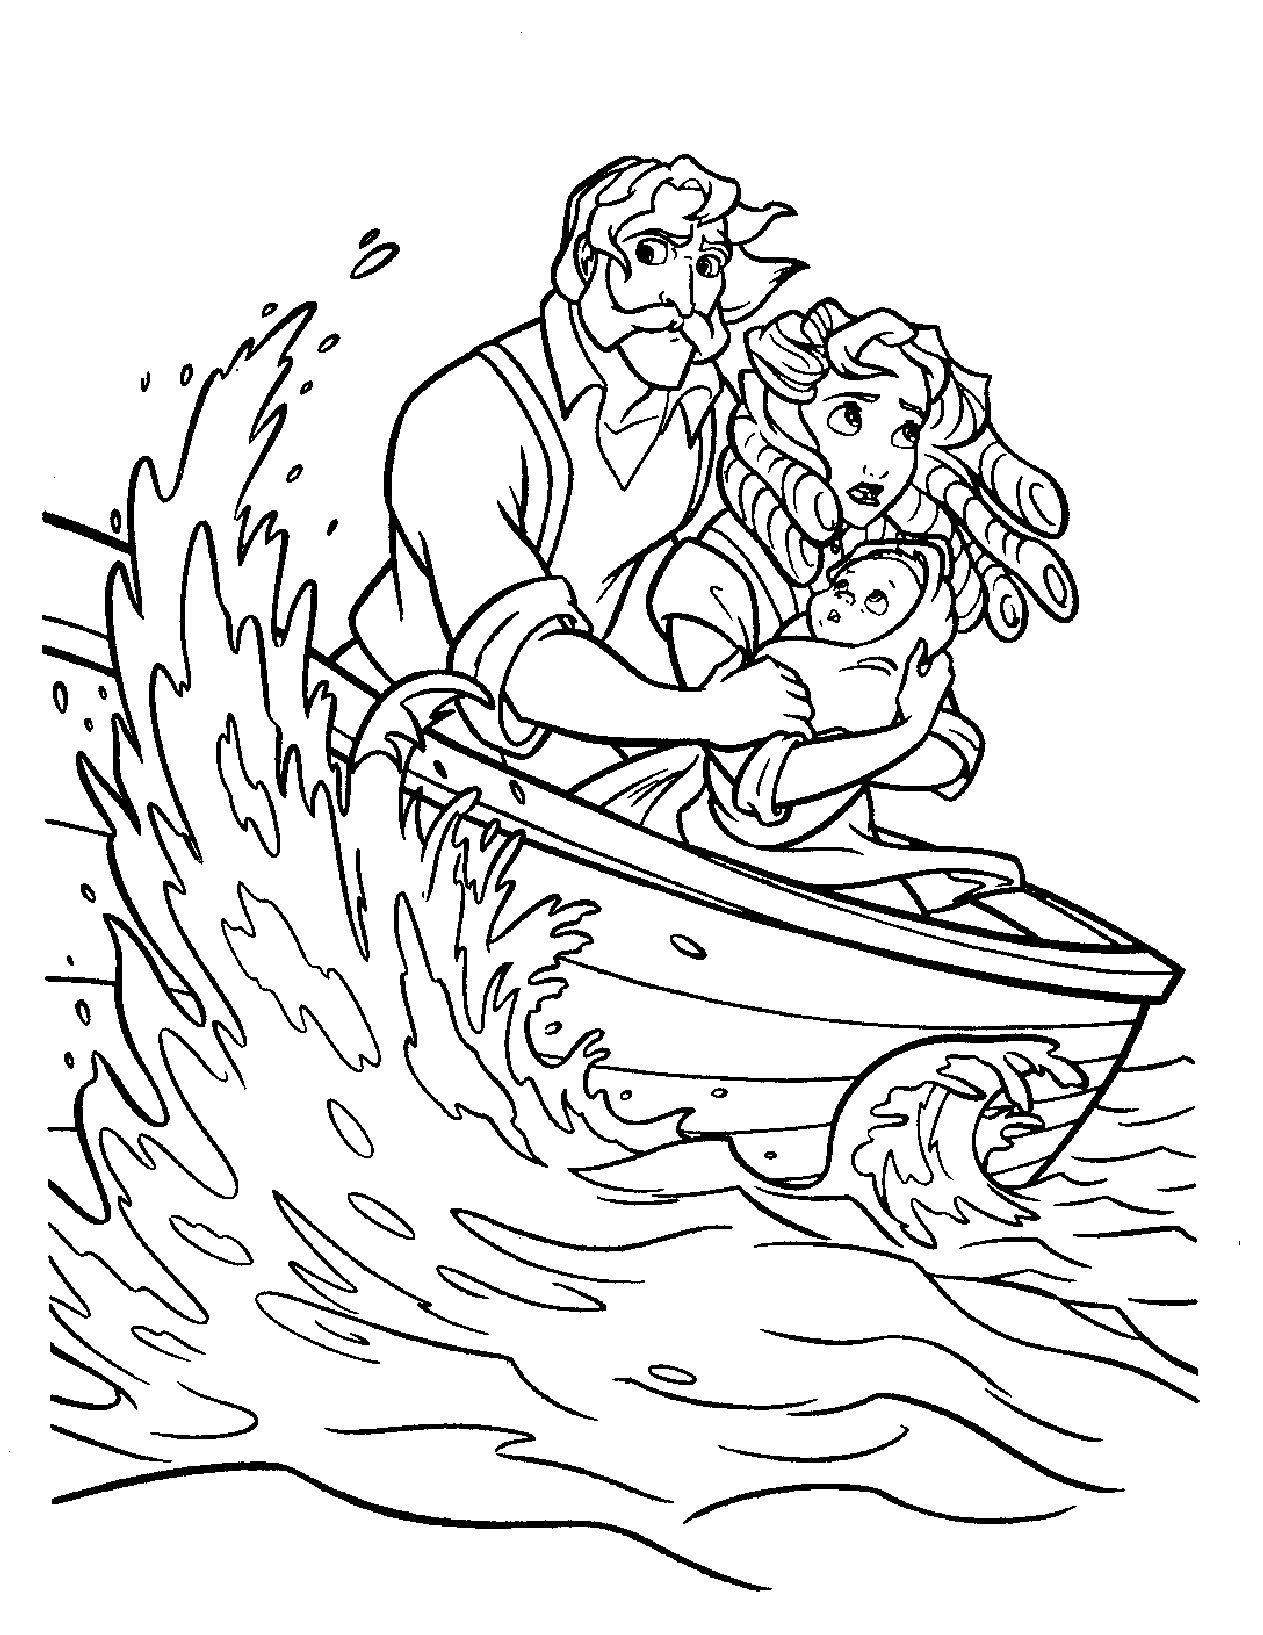 Pin By Delynn Graveline On Coloring Pages Disney Coloring Pages Disney Coloring Sheets Coloring Pages